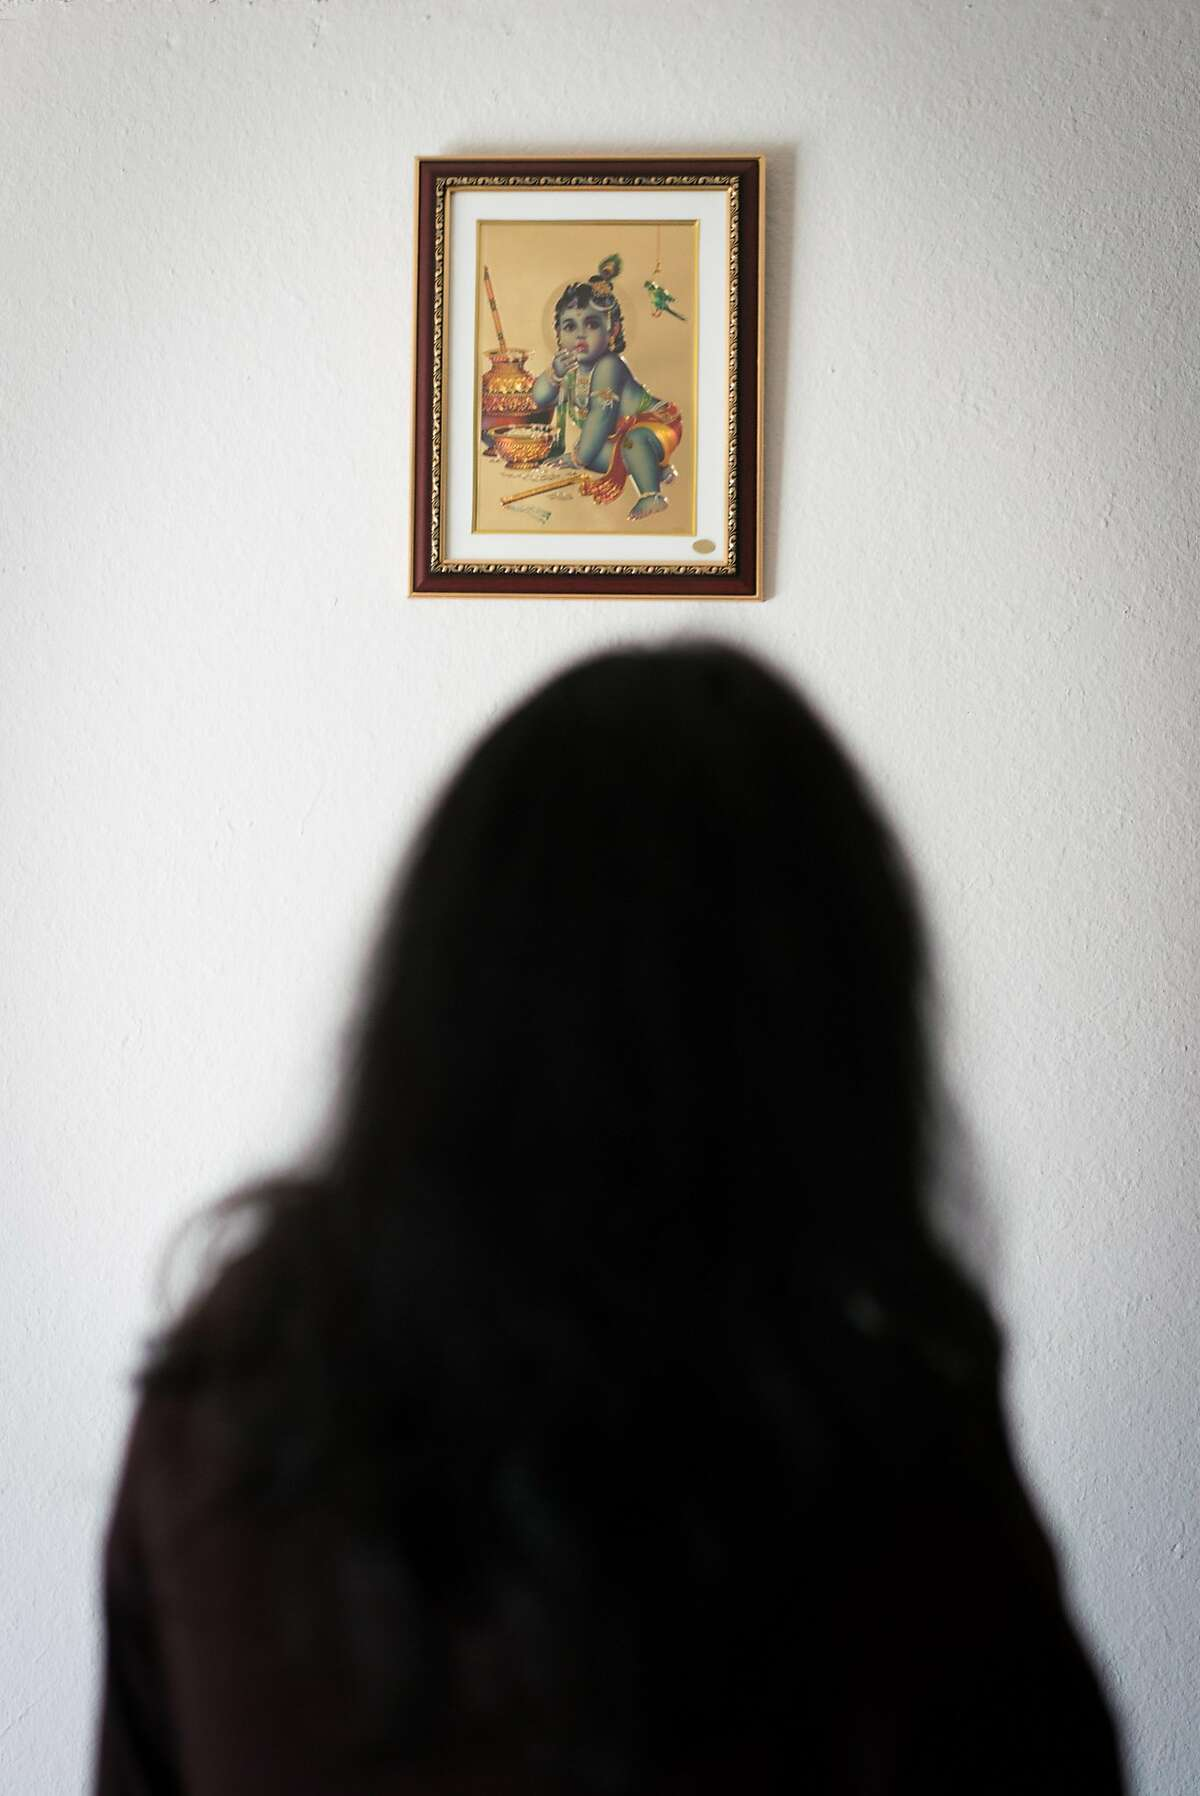 A woman, who chooses to remain anonymous, looks at a photo of a Hindu god inside of her home in Fremont, Calif. on Friday, June 29, 2018. The woman known as